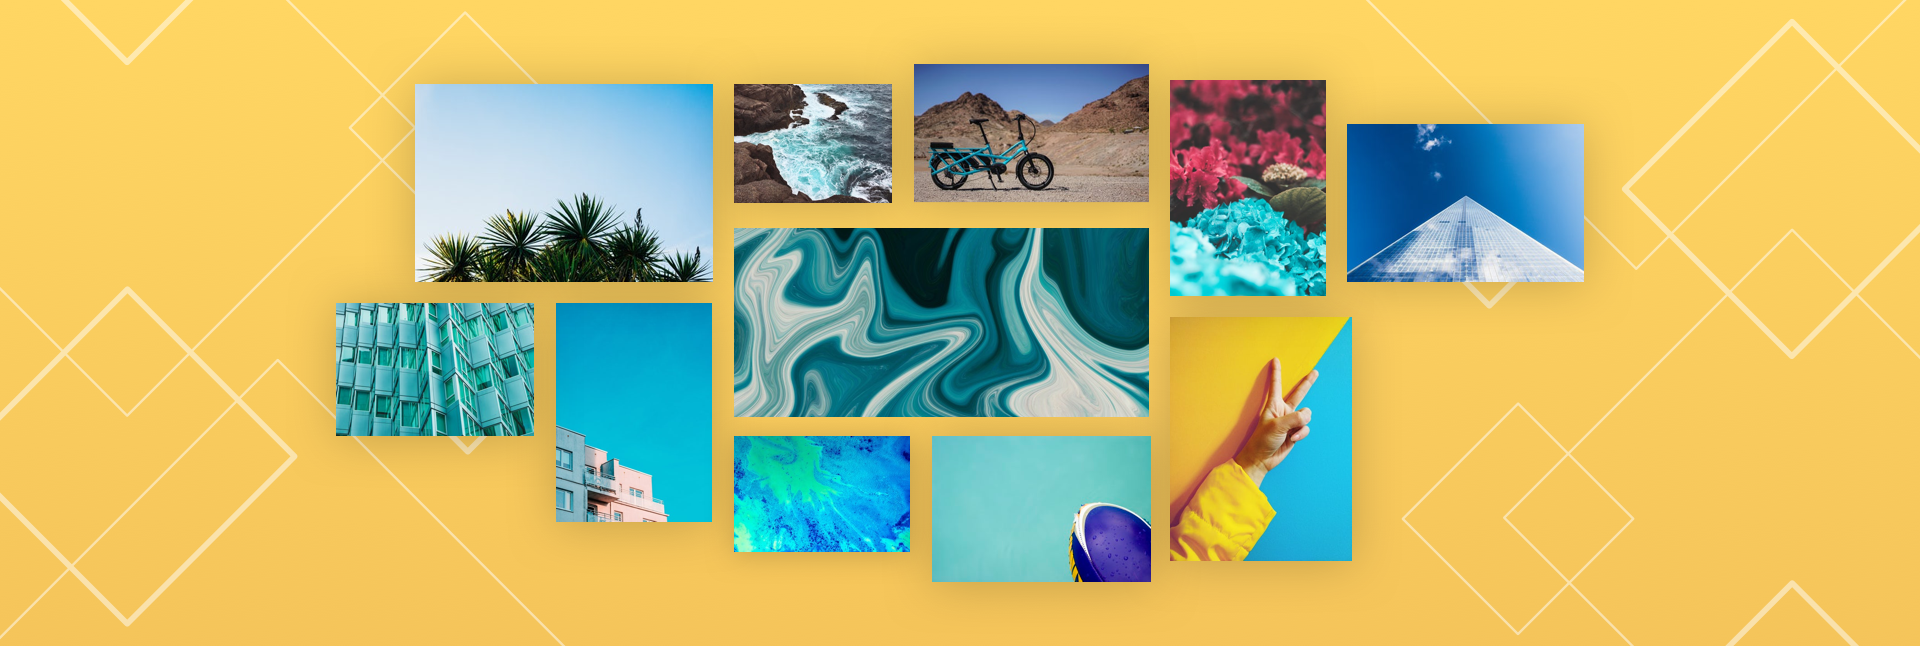 How To Make A Moodboard 8 Tips For Creating Inspiration Boards